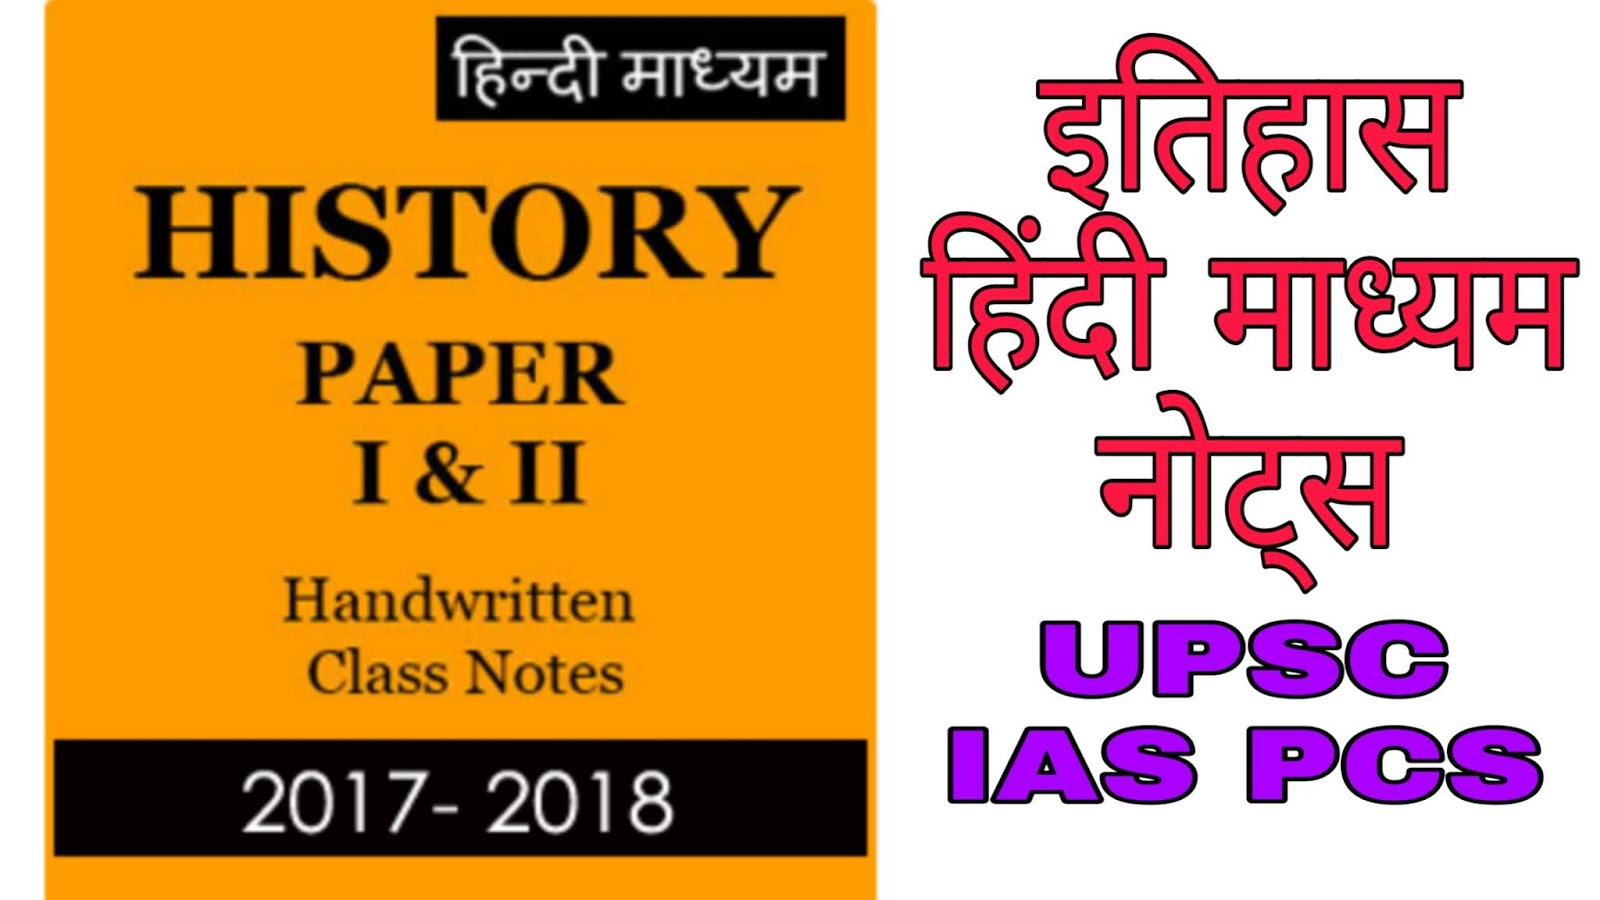 Handwritten Notes Of History In Hindi